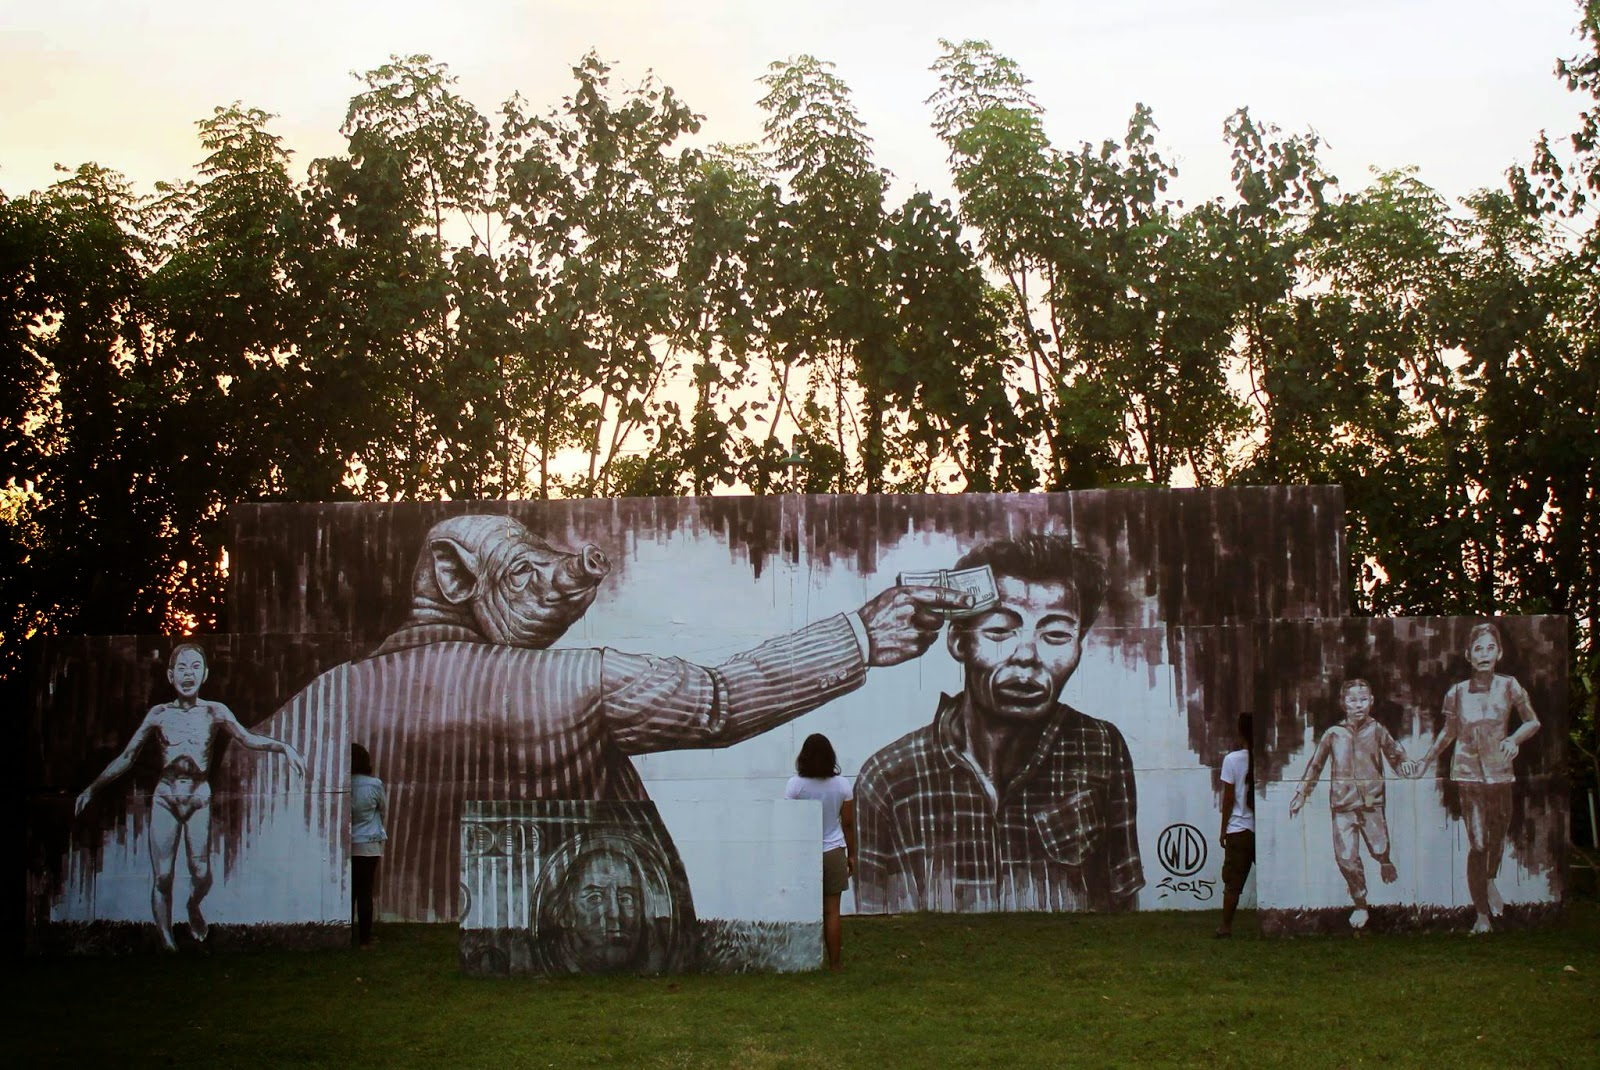 WD unveils Money Kills, a new mural in Bali, Indonesia (3)